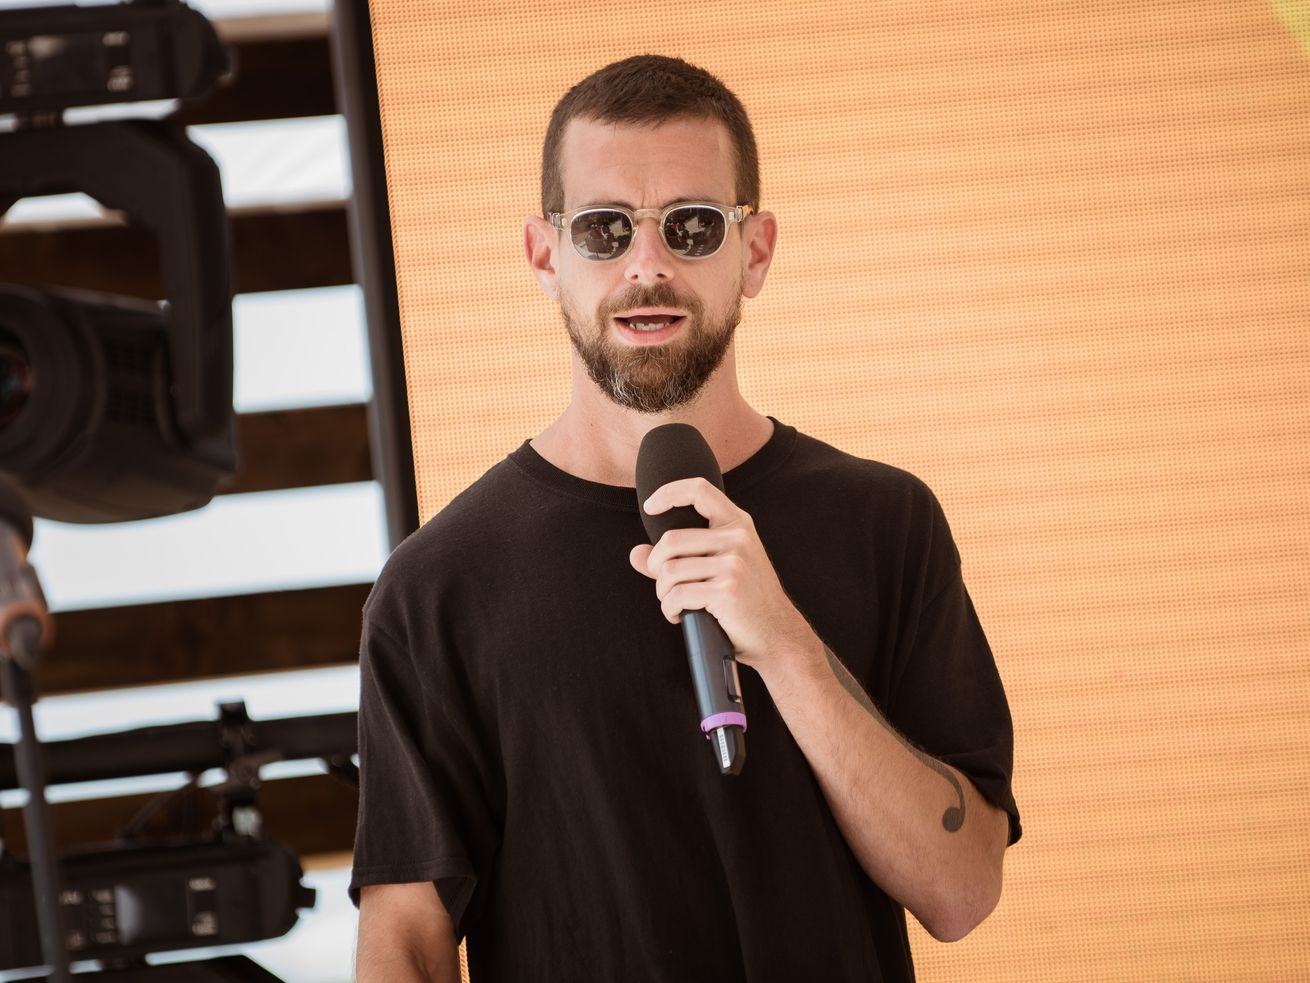 photo of As Pinterest and Facebook move to shut down anti-vaxxers, Twitter's Jack Dorsey appeared on a podcast with one image